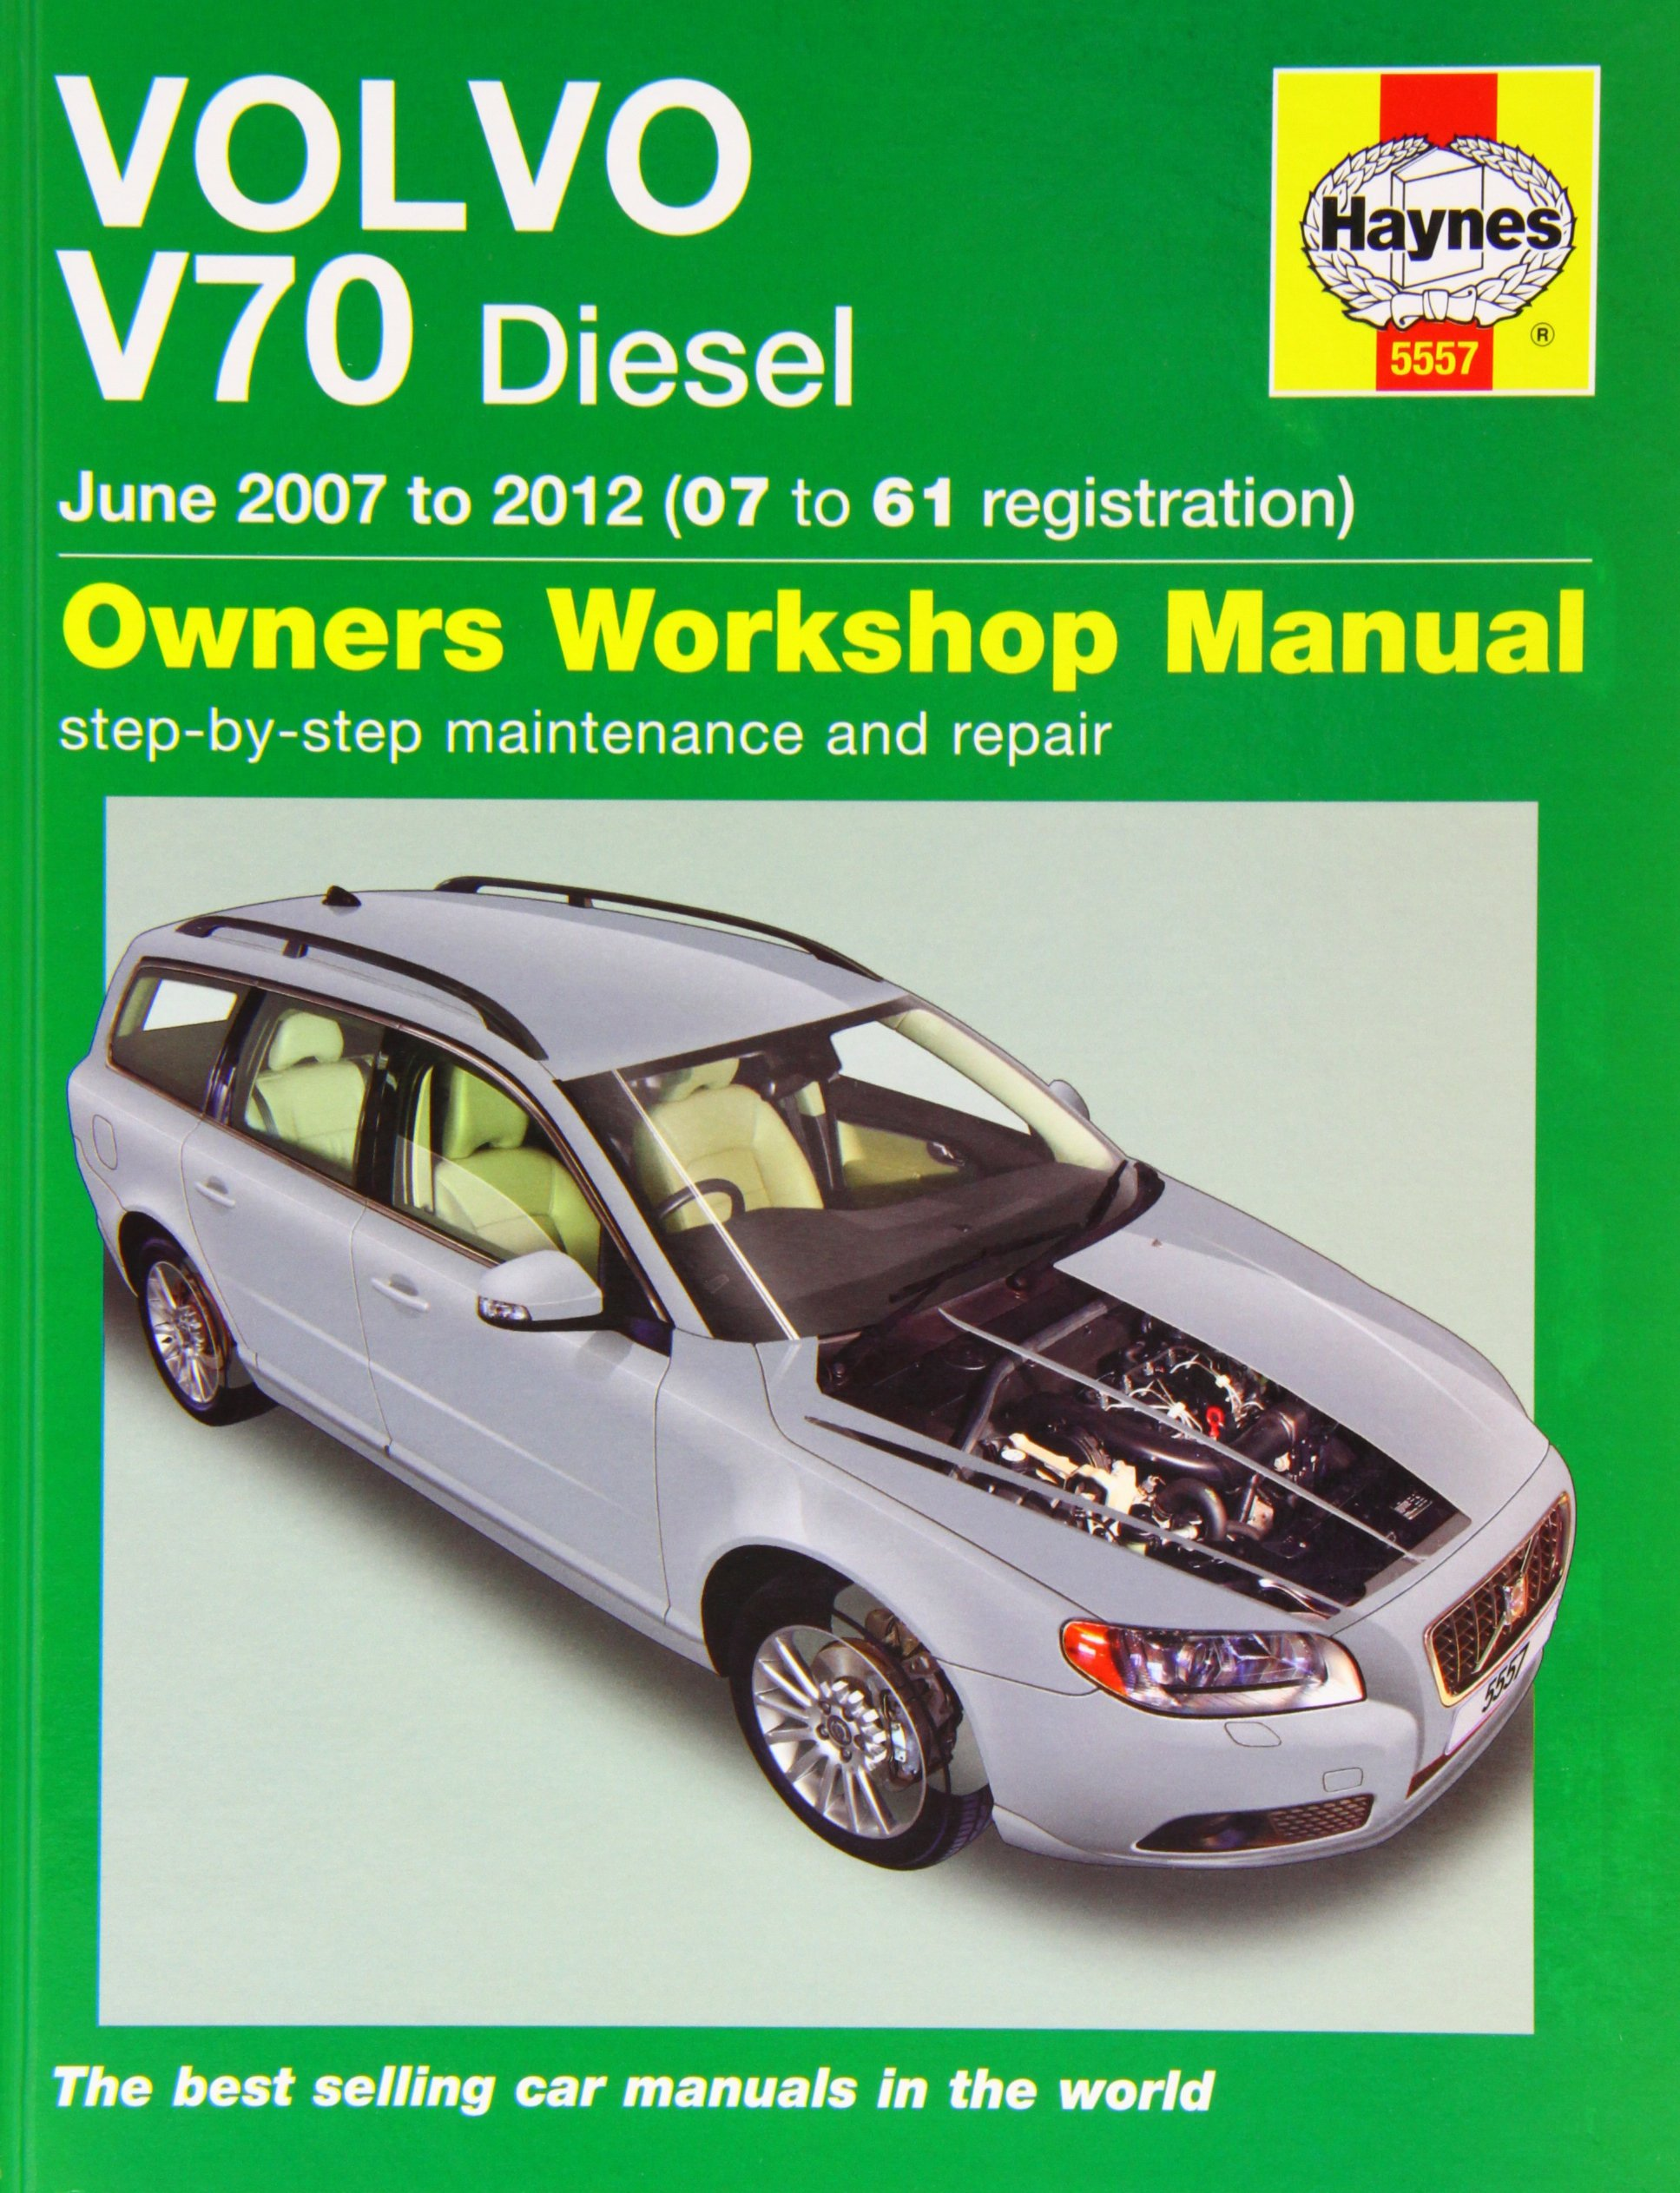 1996 volvo v70 owners manual torren ebook rh 1996 volvo v70 owners manual torren ebook mol 1994 volvo 940 owners manual pdf 2005 Volvo